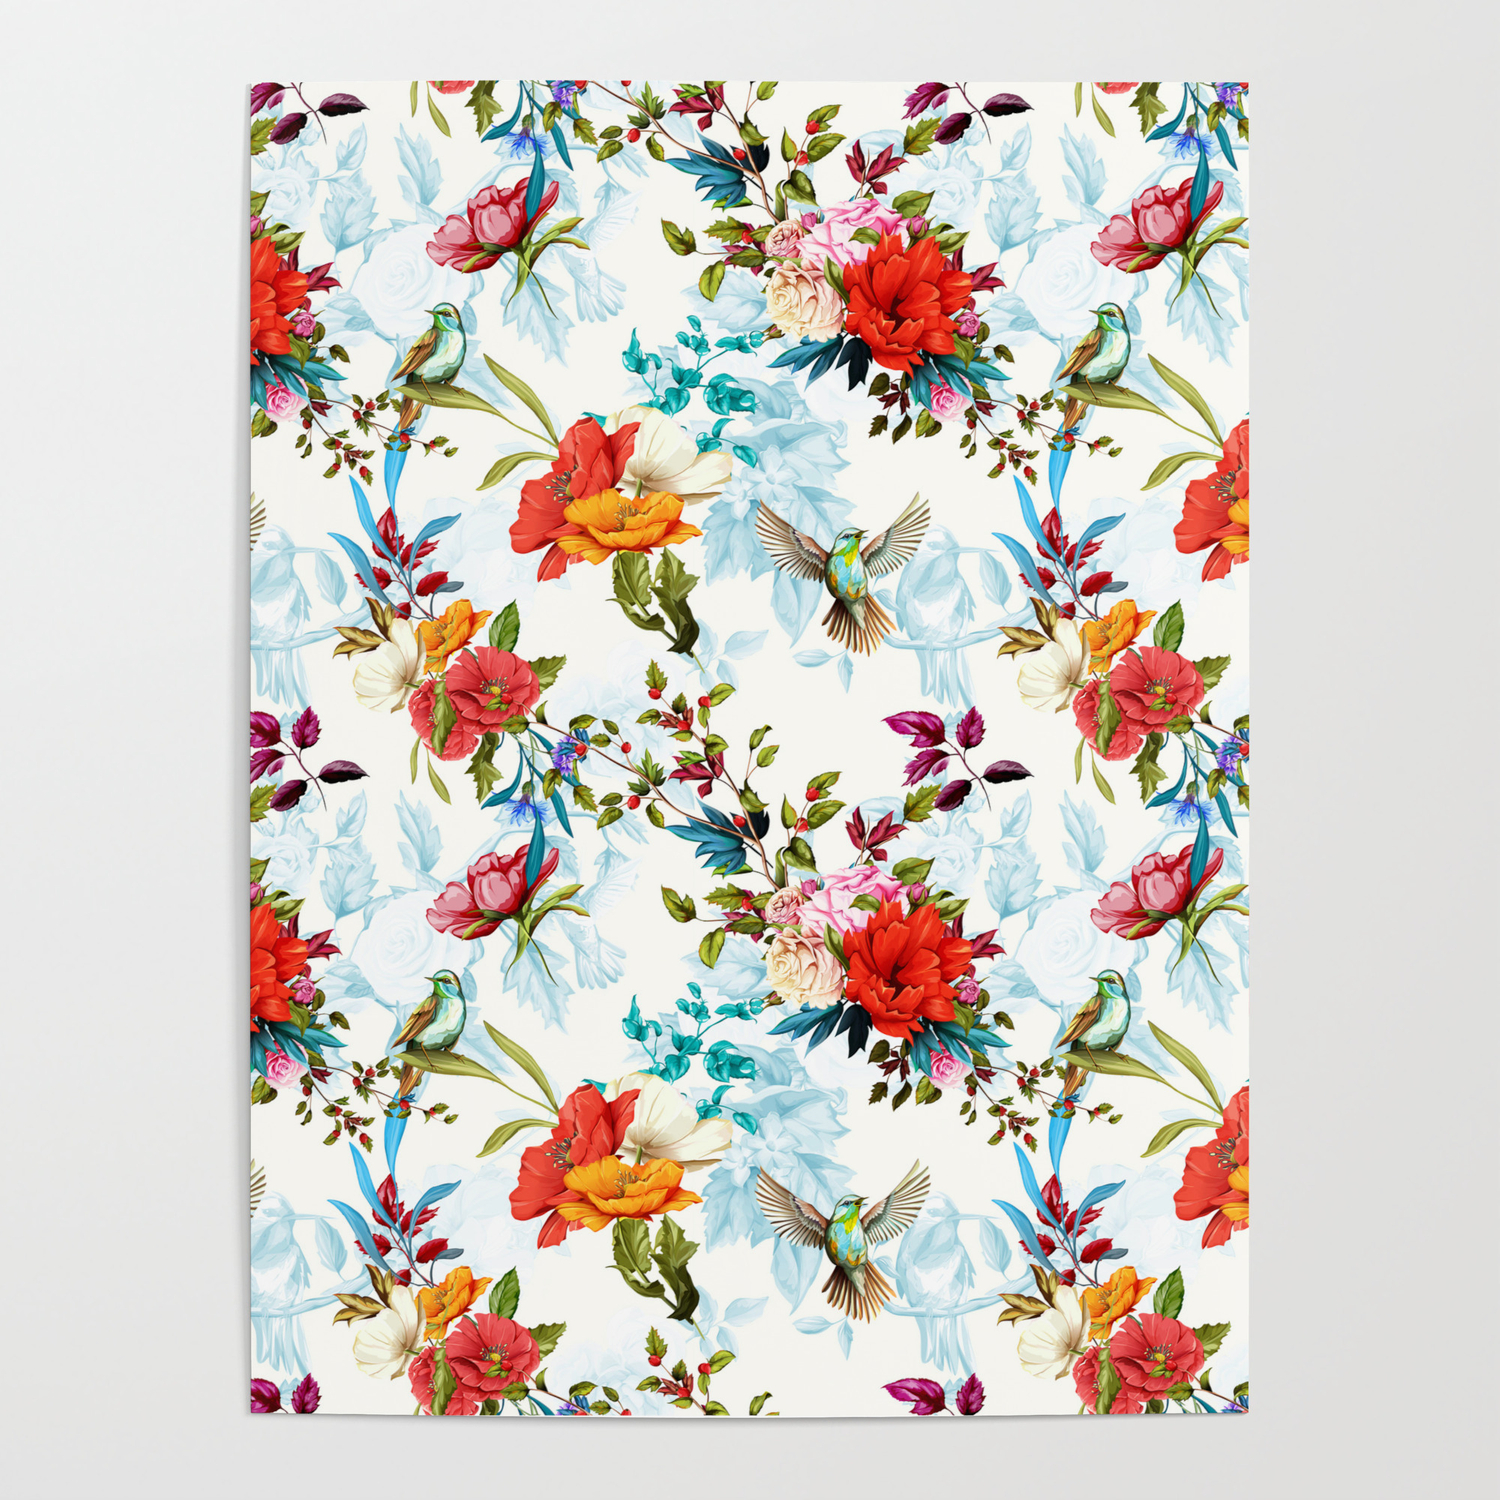 Floral Pattern Poppy Wild Blossom Rose Nightingale Birds With